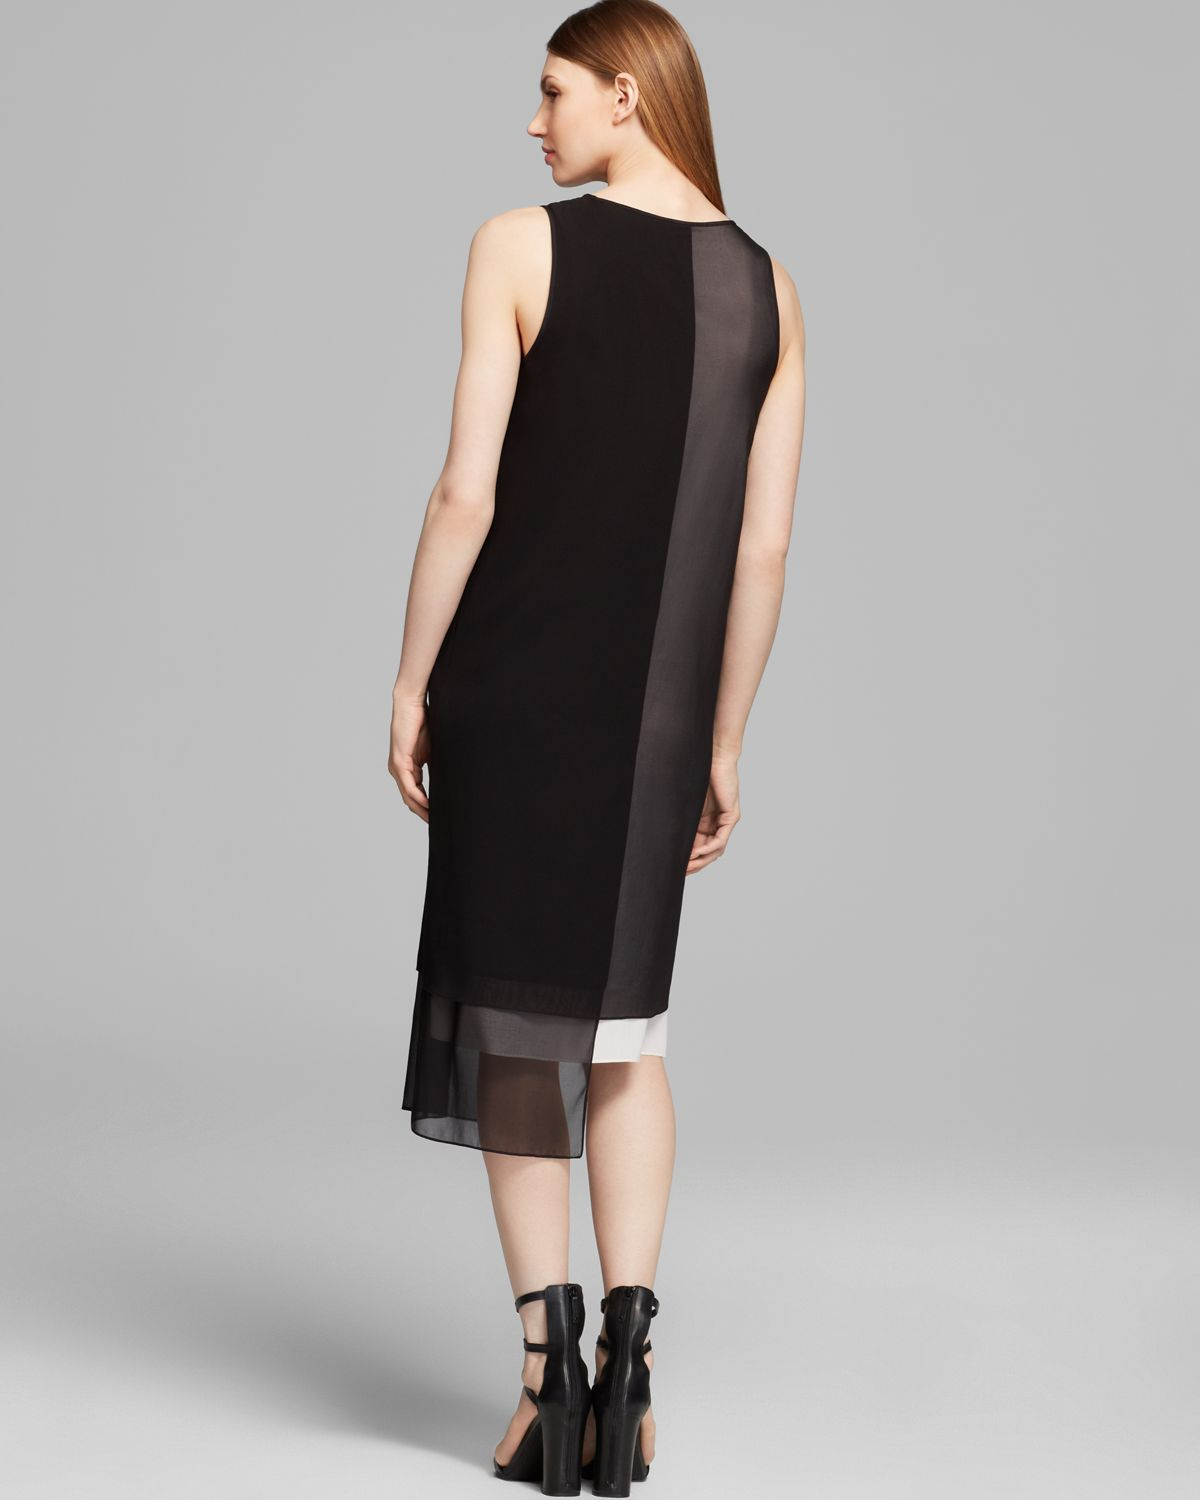 Dkny Layered Color Block Tank Dress In Black White Black